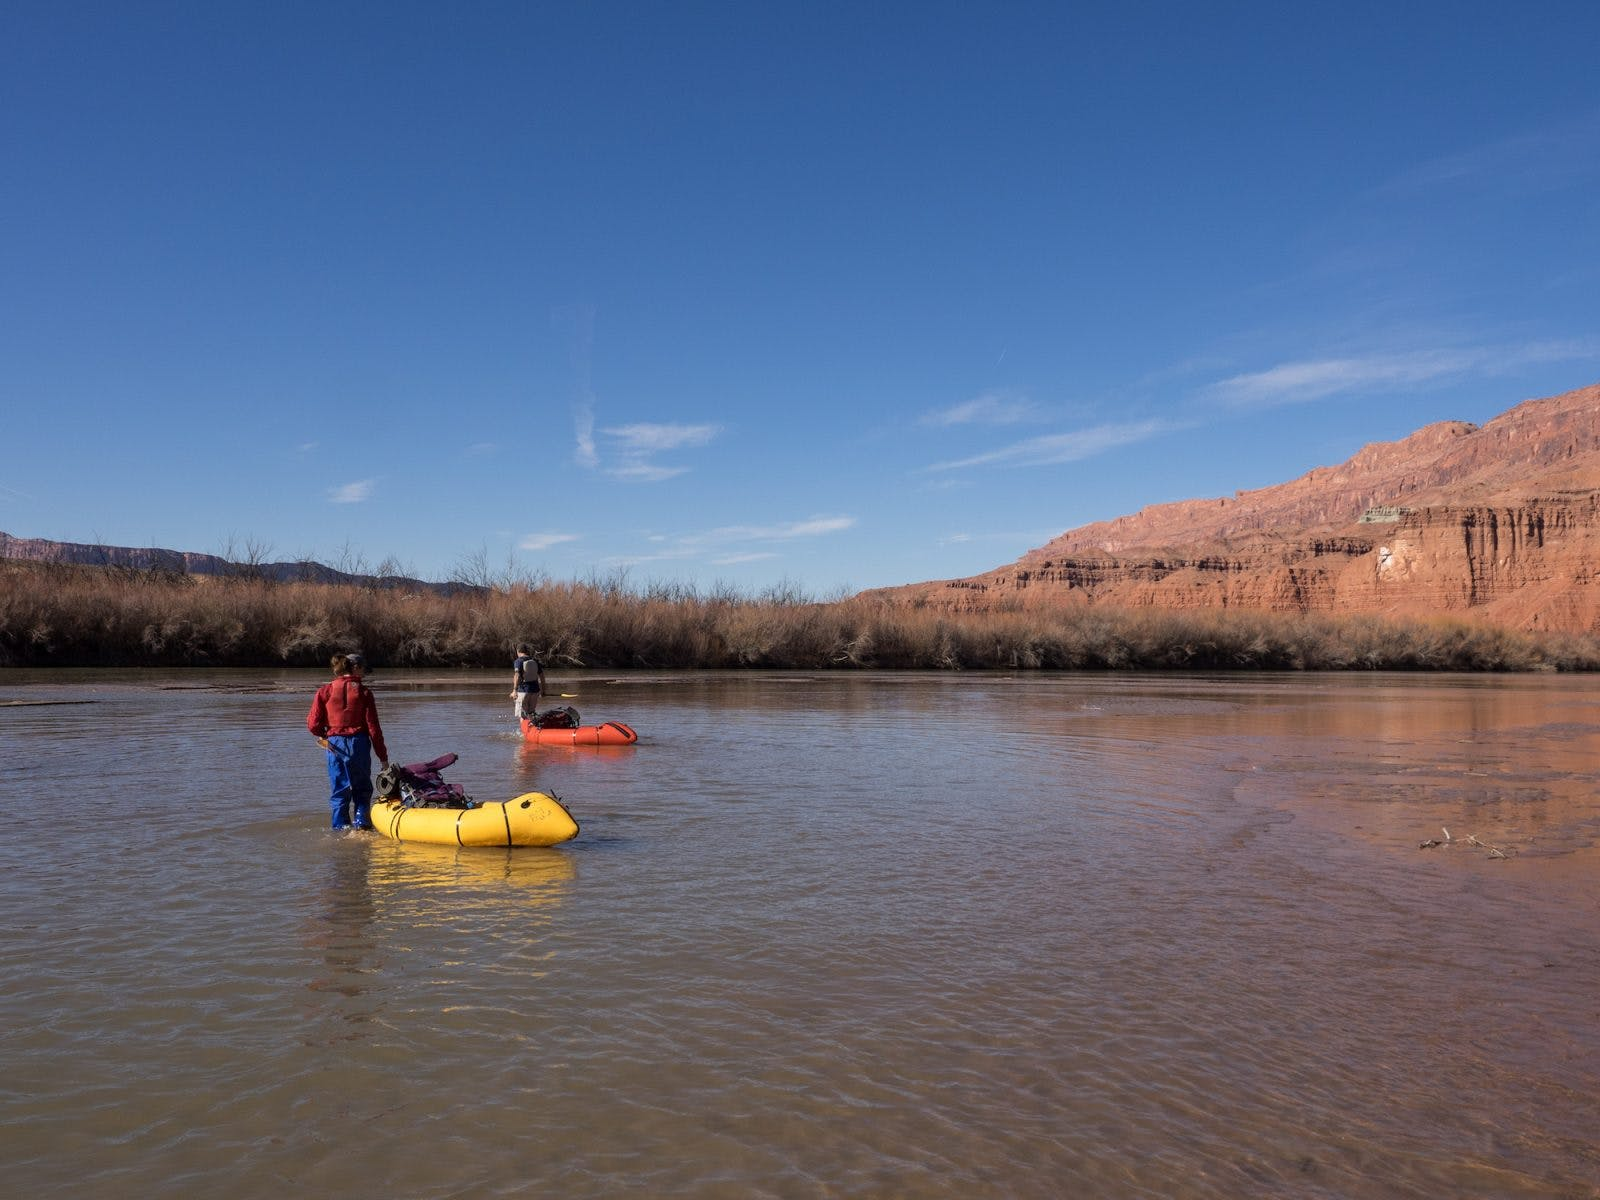 The first steps to find some current on the Colorado River.